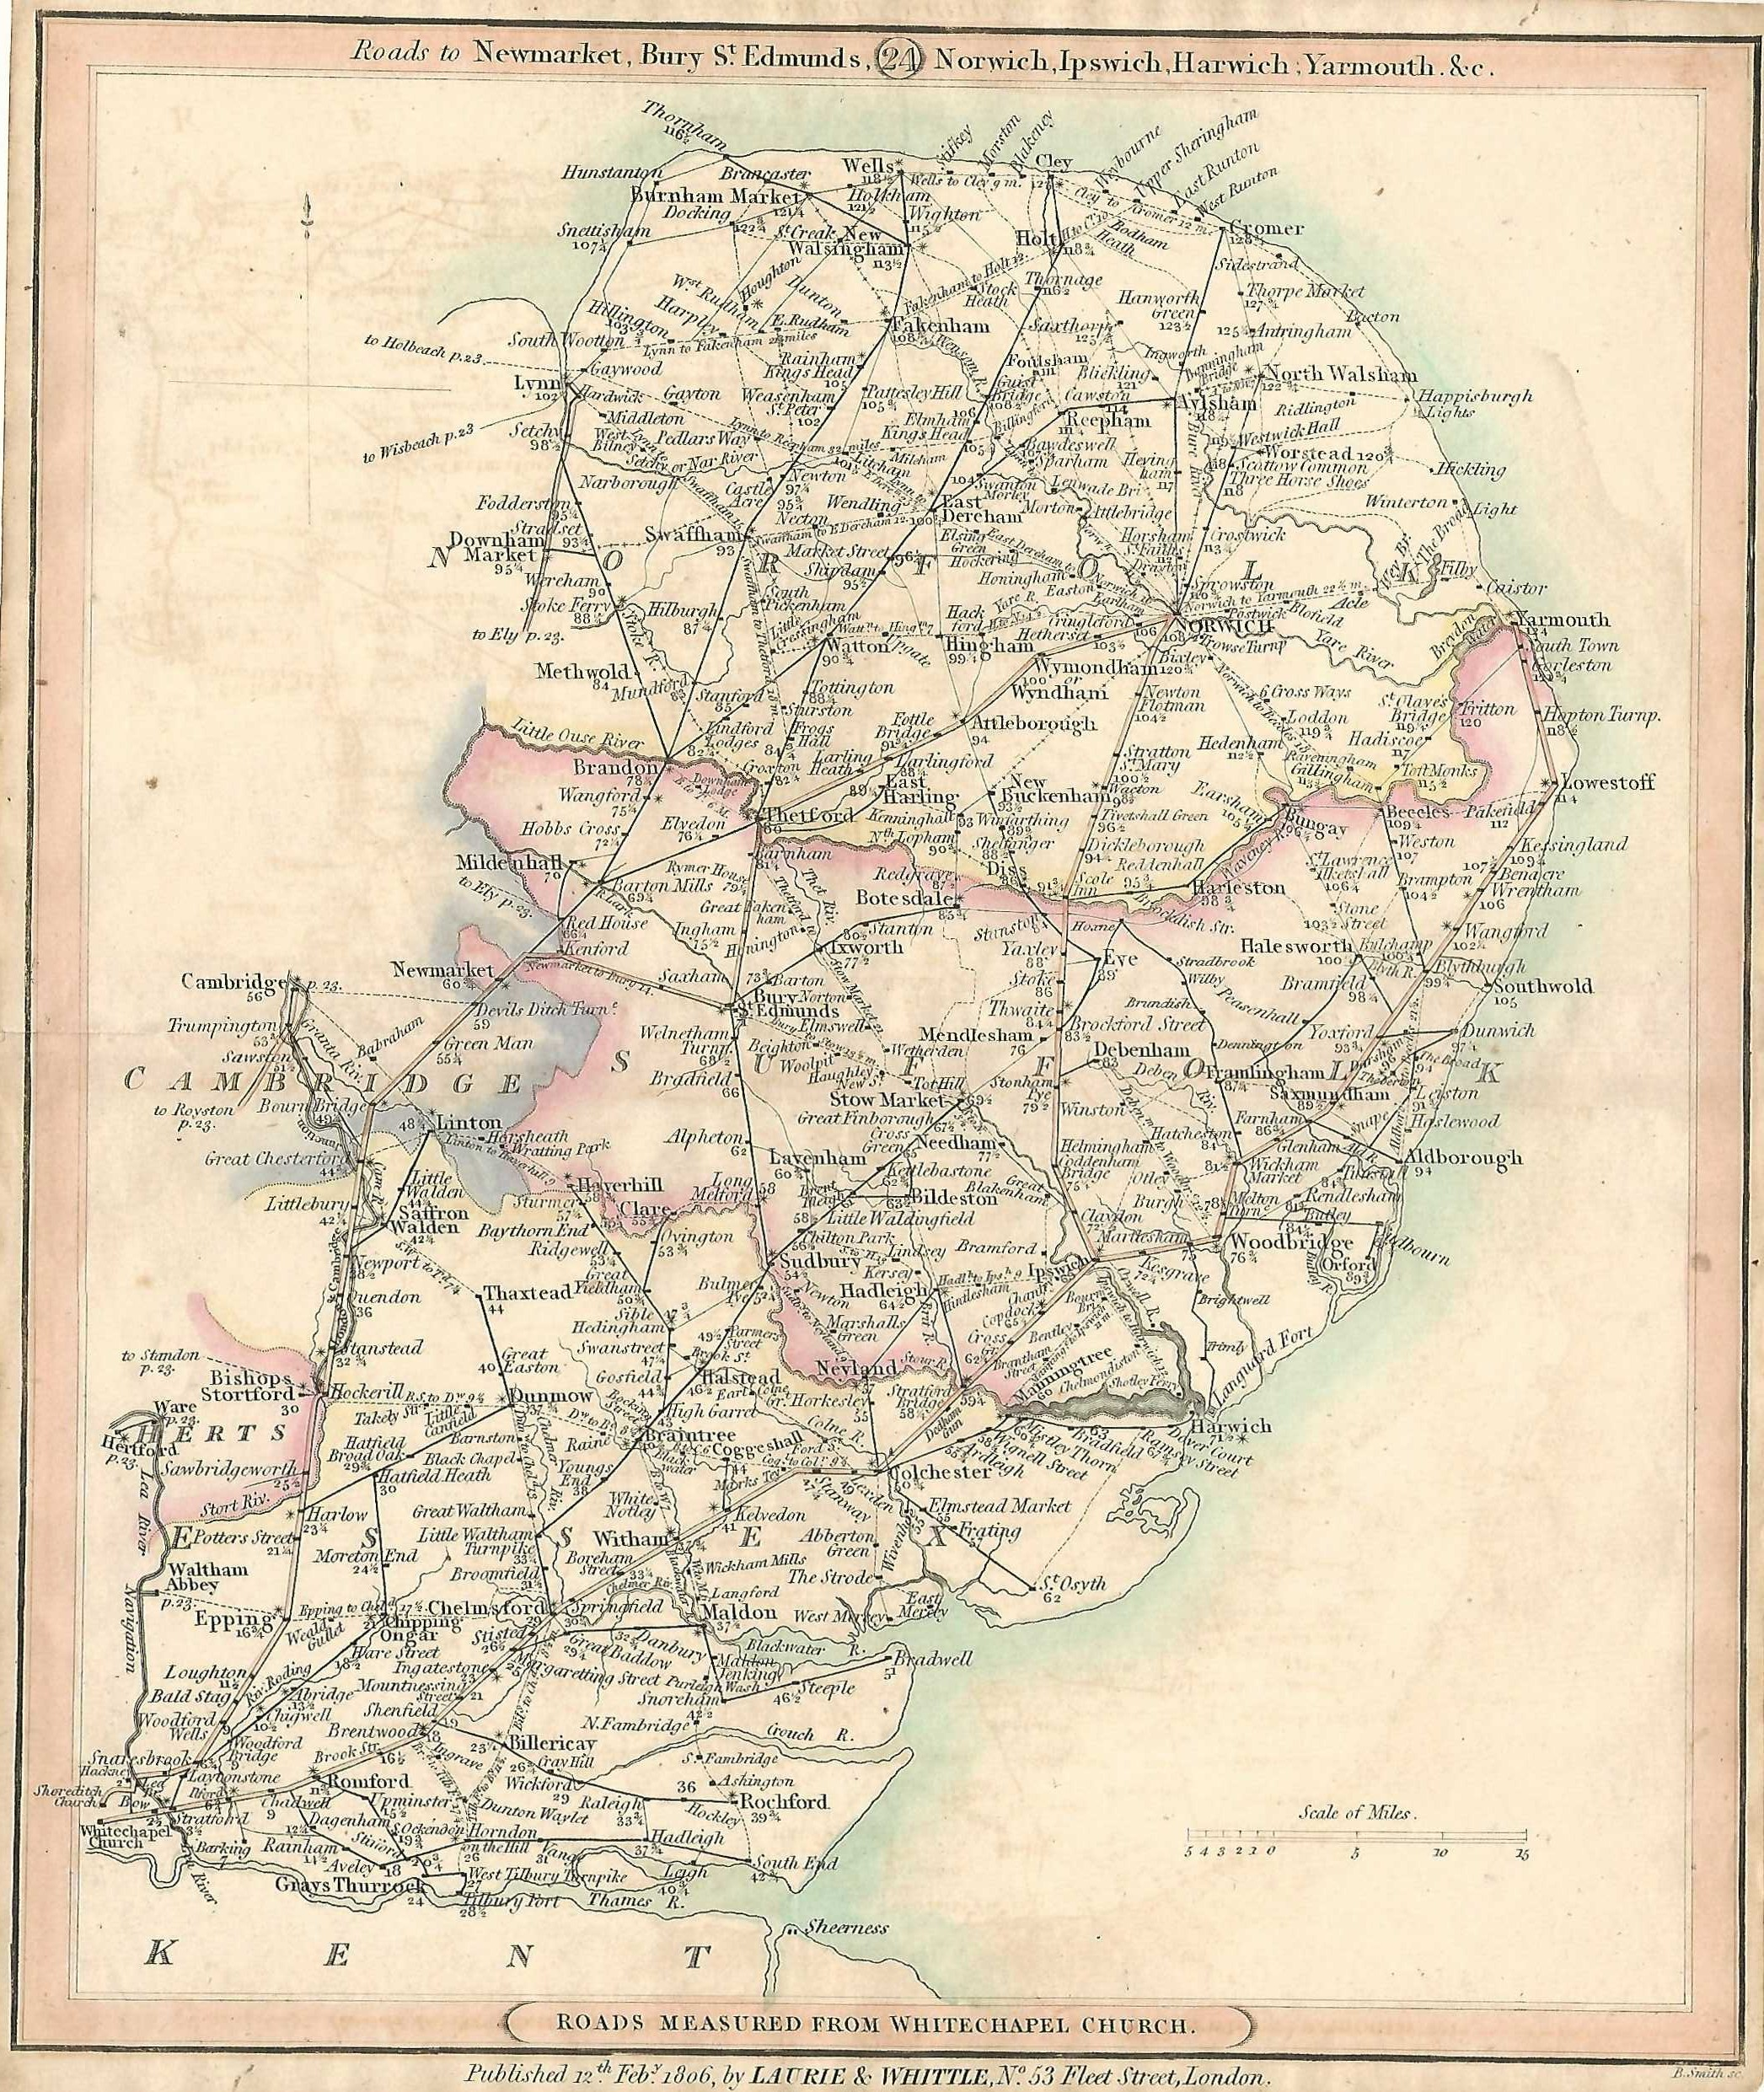 London Essex Hertfordshire Cambridge Suffolk Norfolk Antique Road - Antique road maps